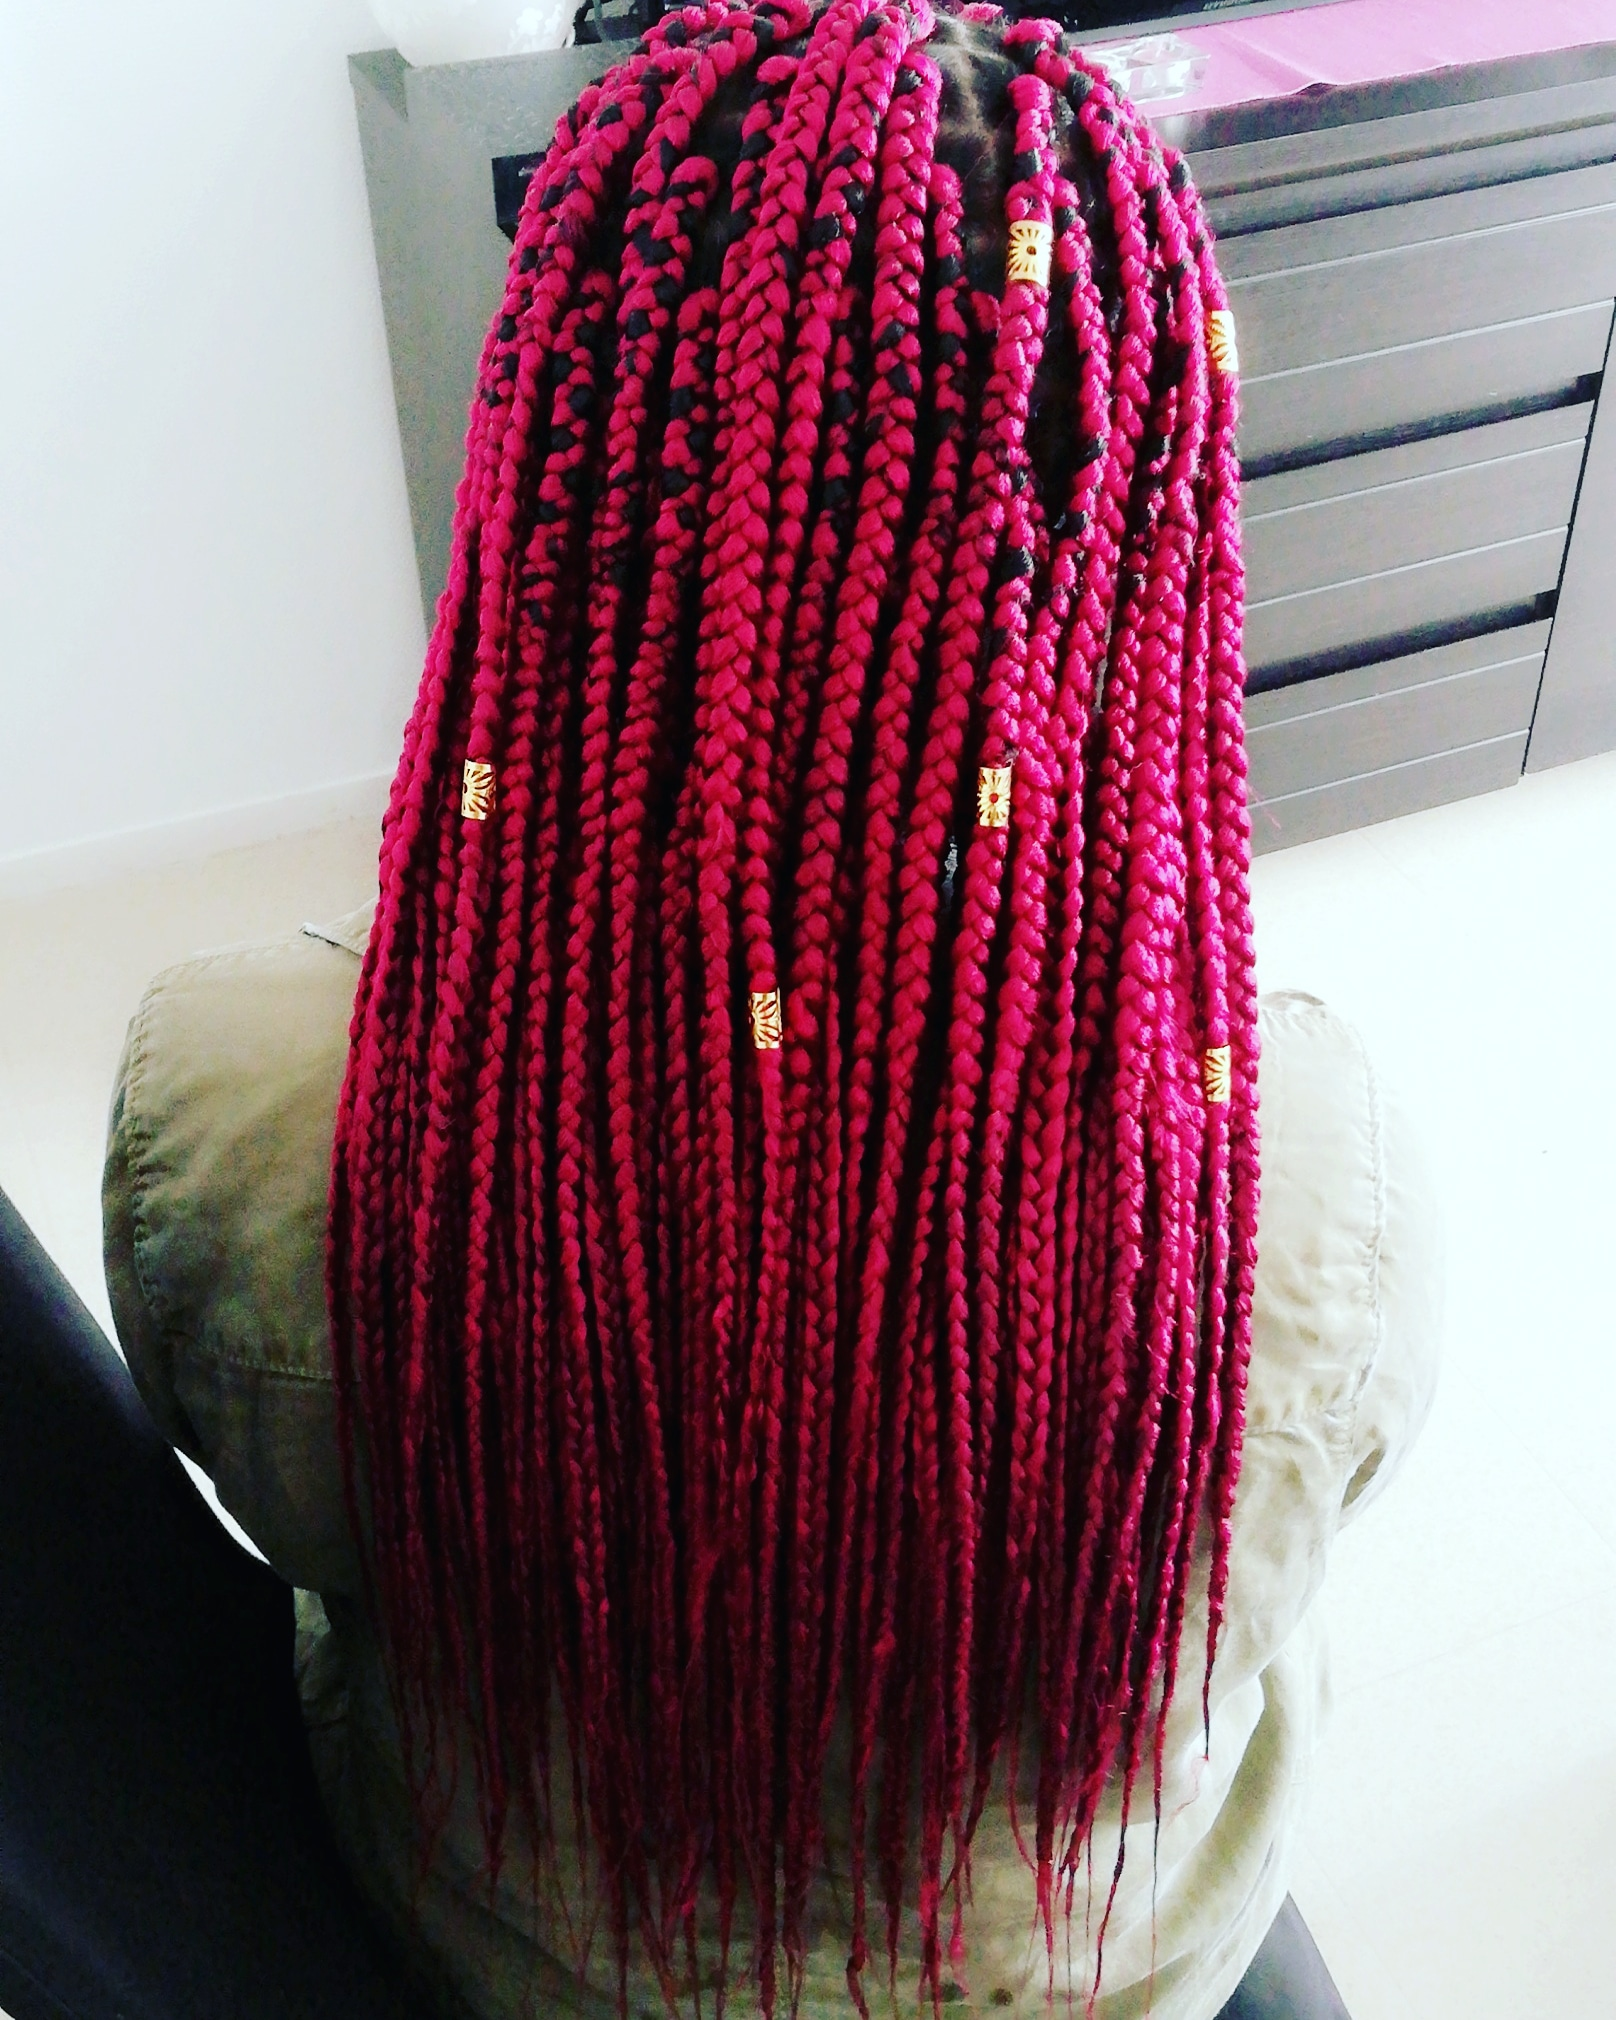 salon de coiffure afro tresse tresses box braids crochet braids vanilles tissages paris 75 77 78 91 92 93 94 95 KDRTUGIC